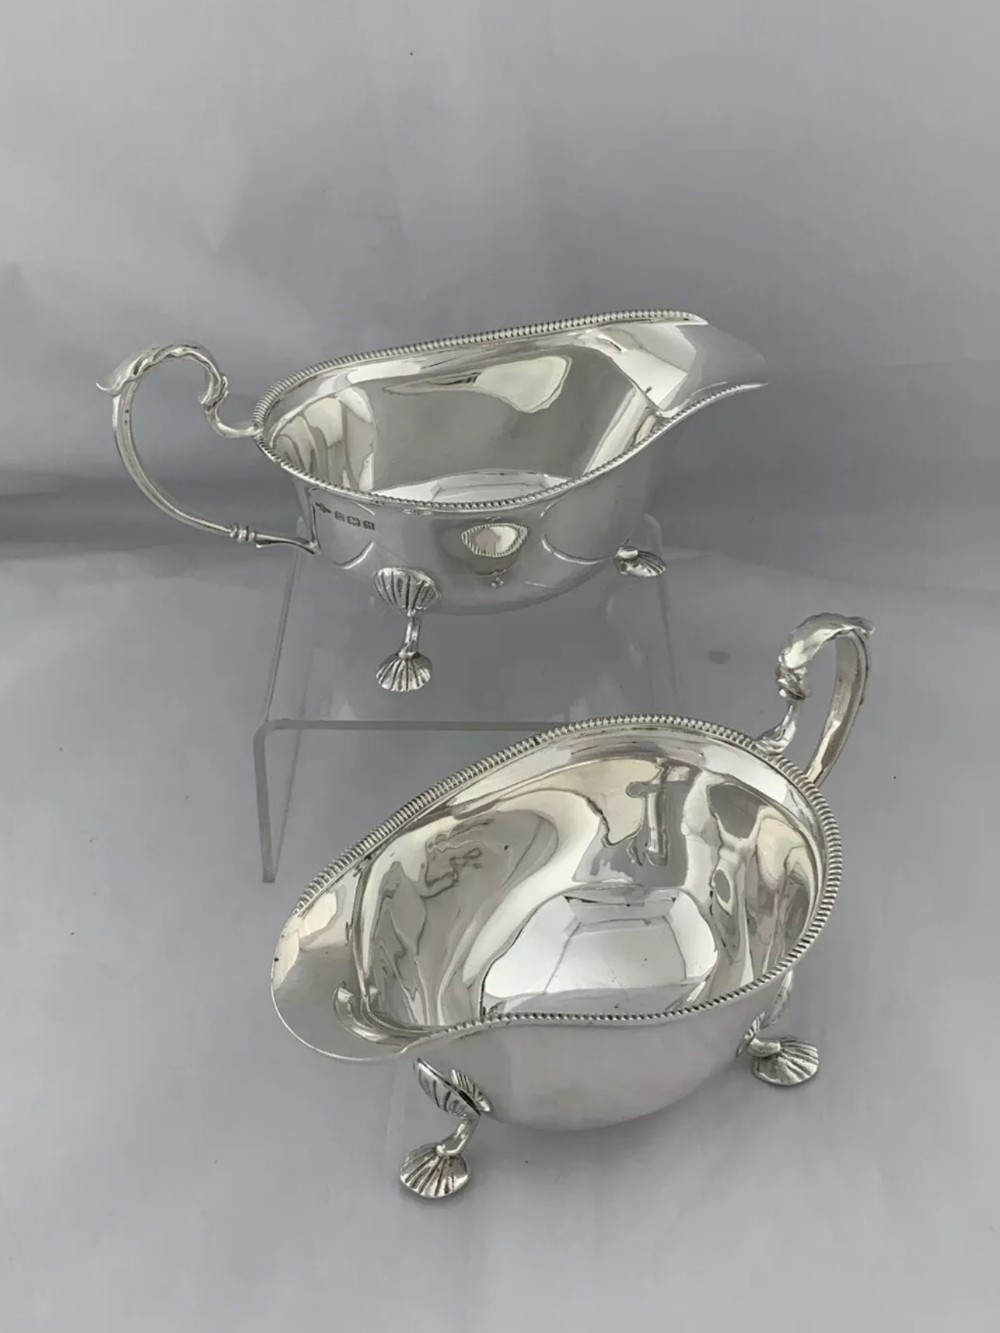 pair of sterling silver sauceboats or gravy boats 1936 birmingham a e poston